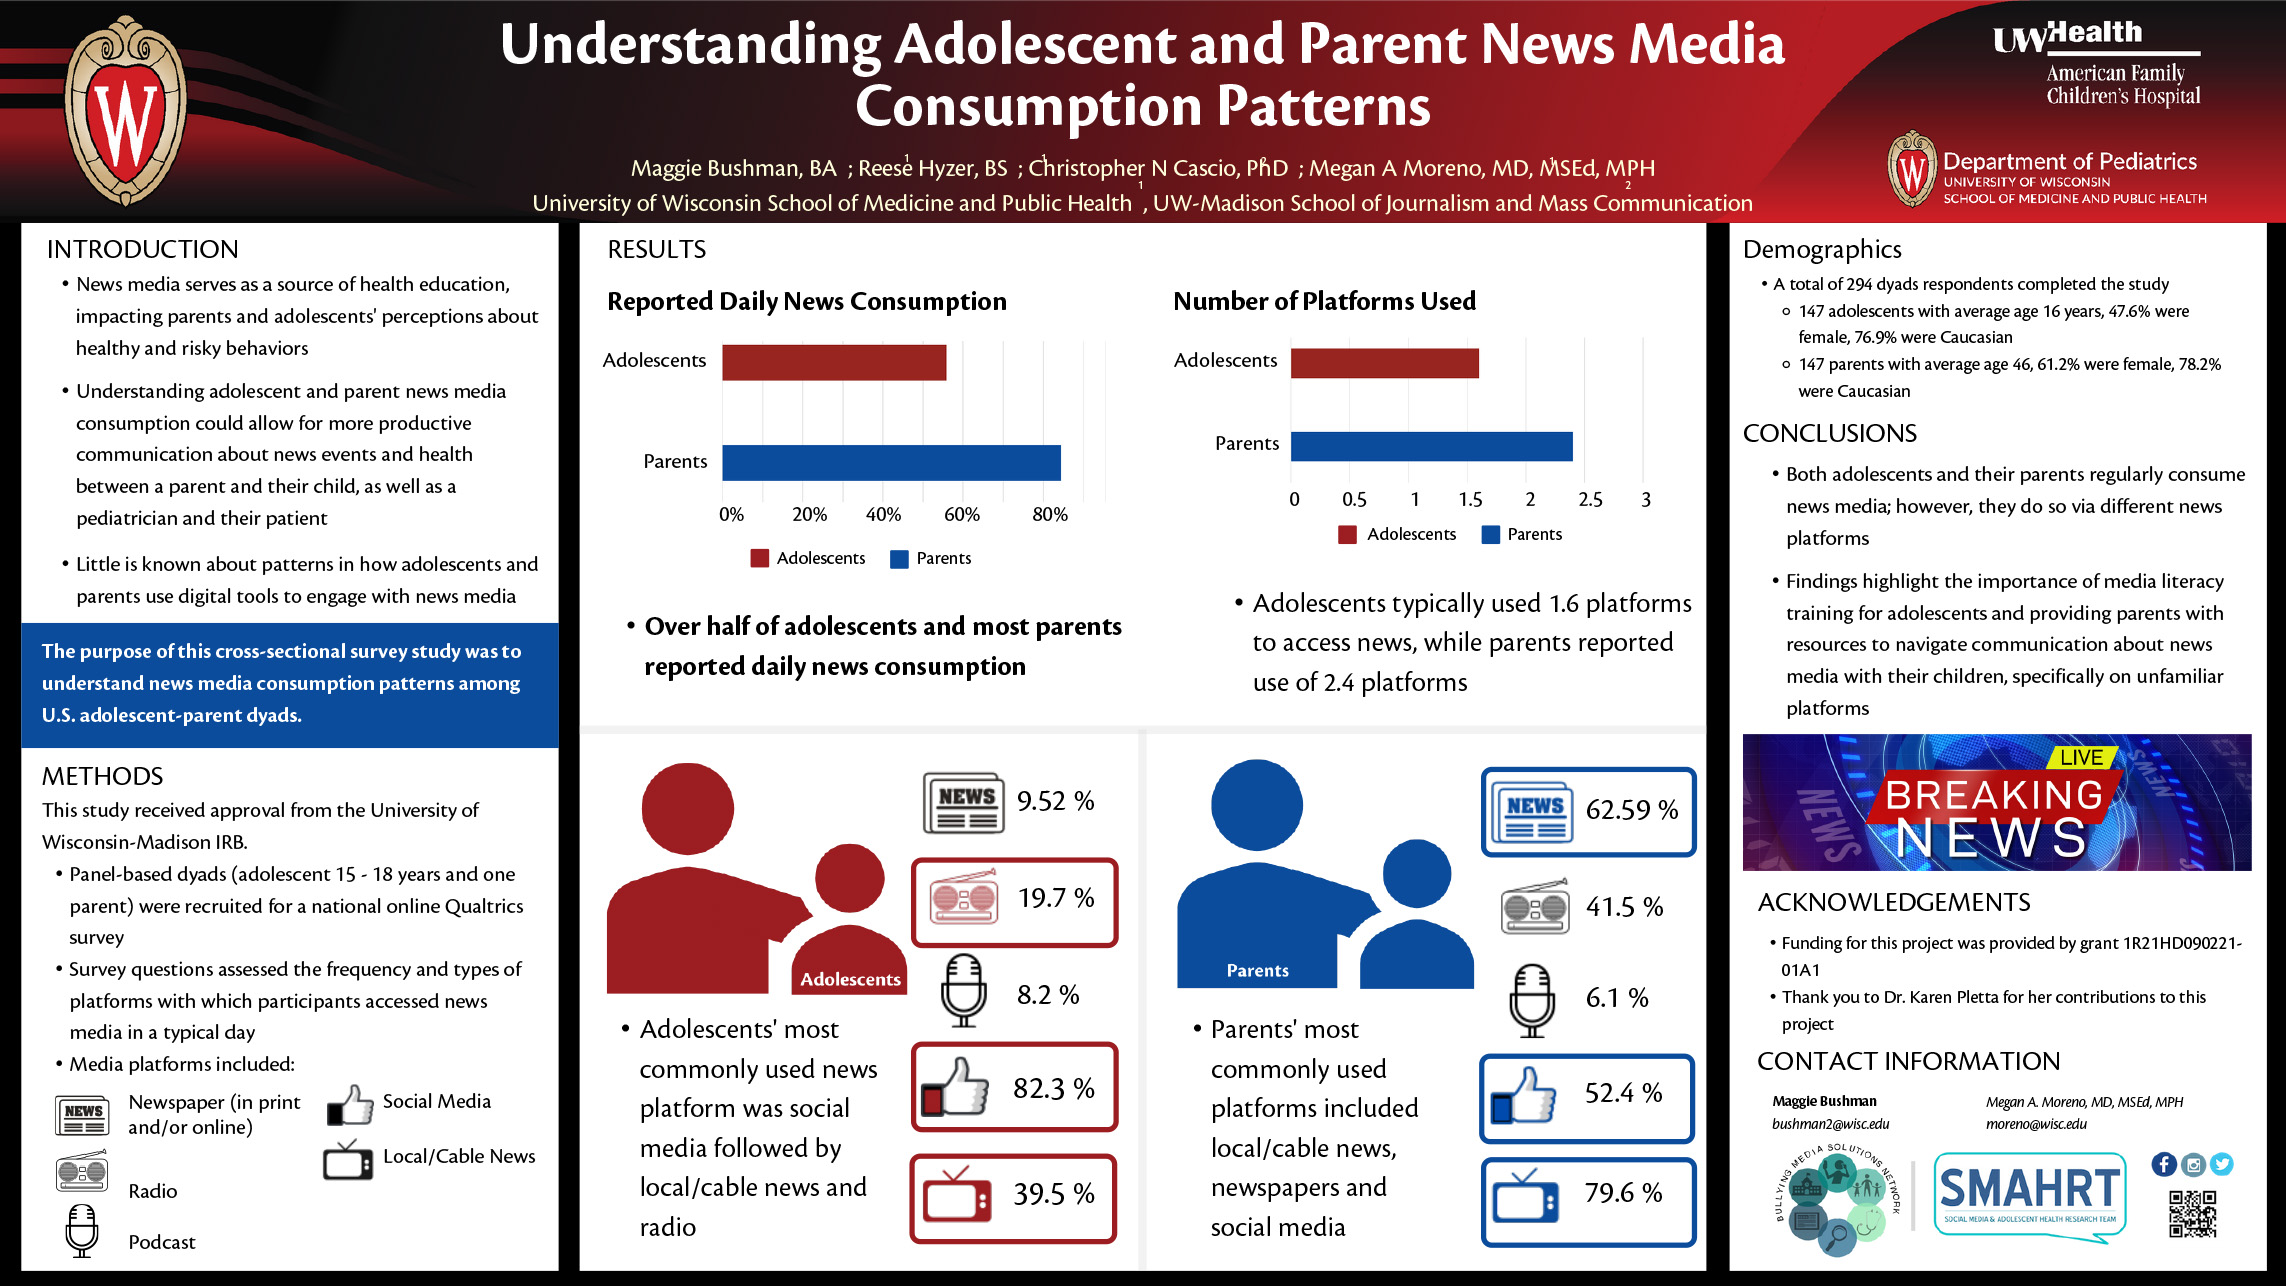 Understanding adolescent and parent news media consumption patterns poster image